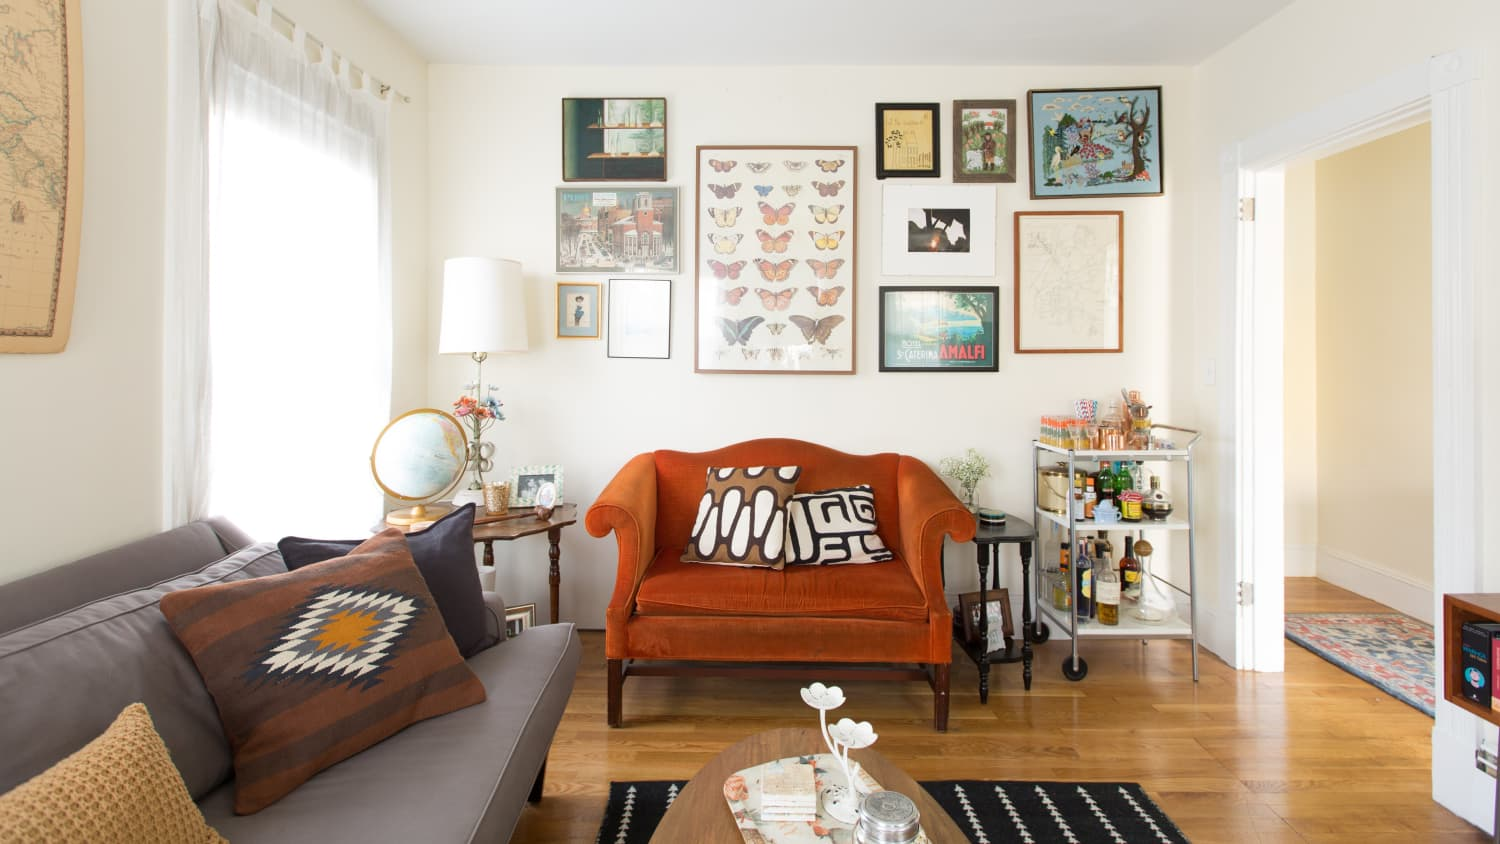 The 7 Best Living Room Decorating Tips According To Apartment Therapy Readers